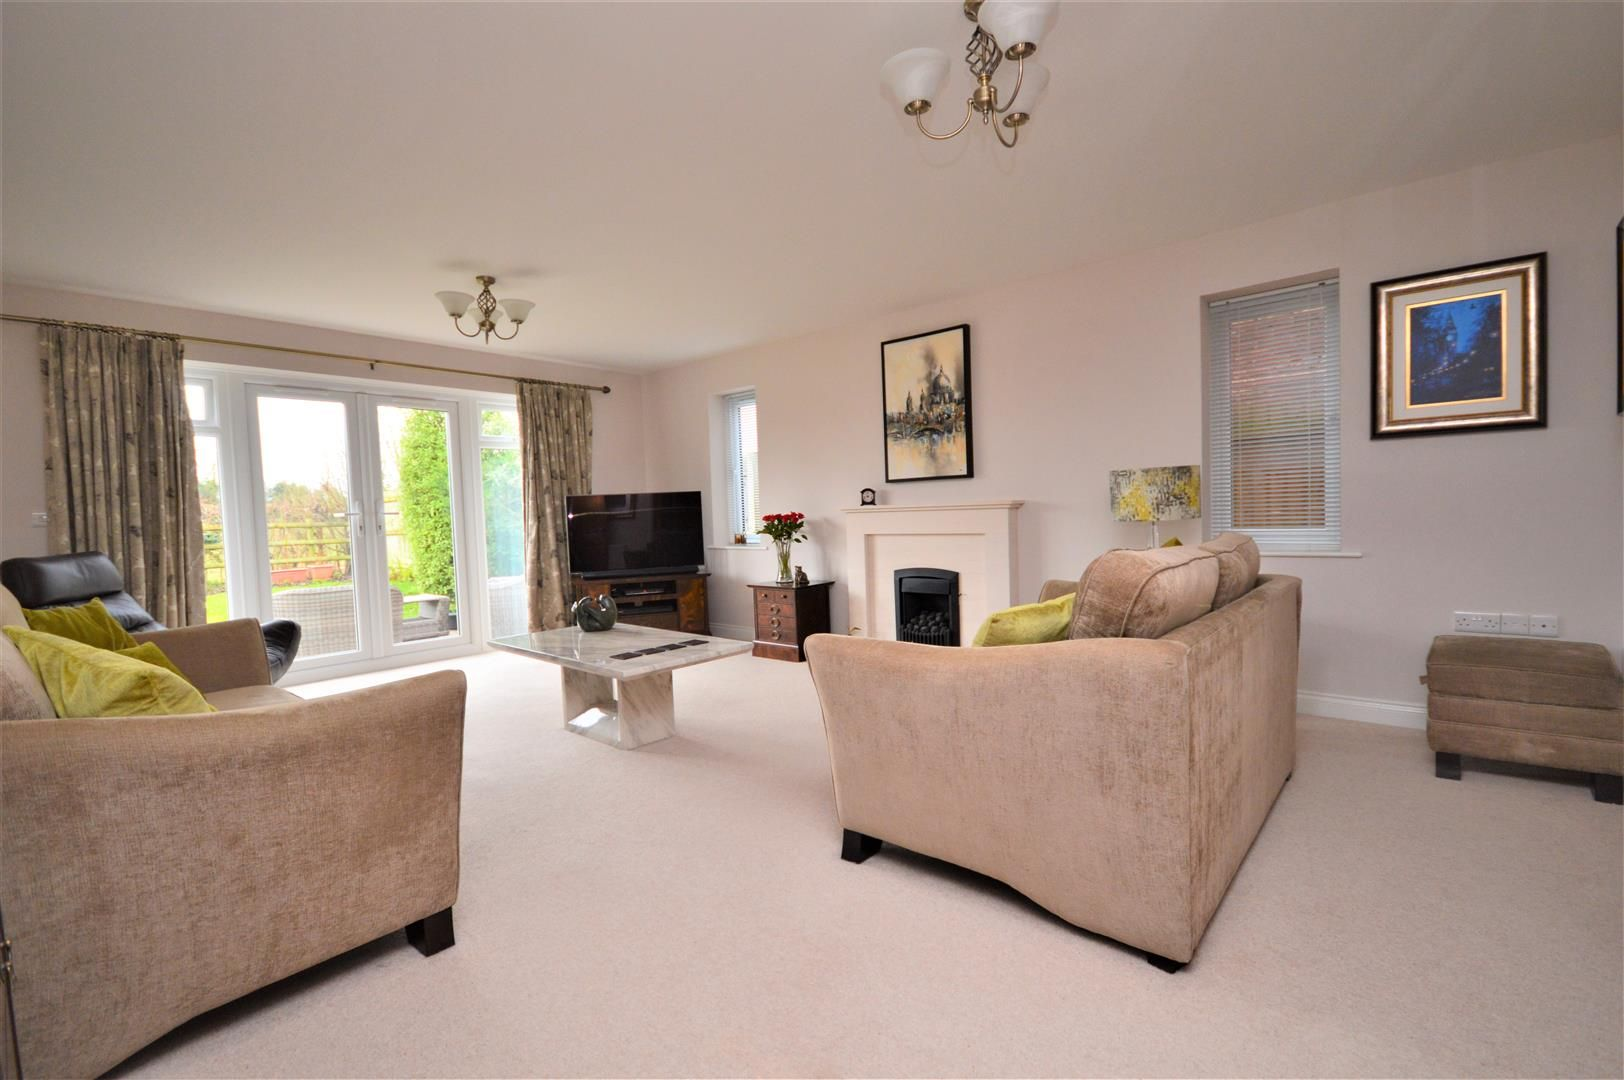 4 bed detached for sale in Wellington 6